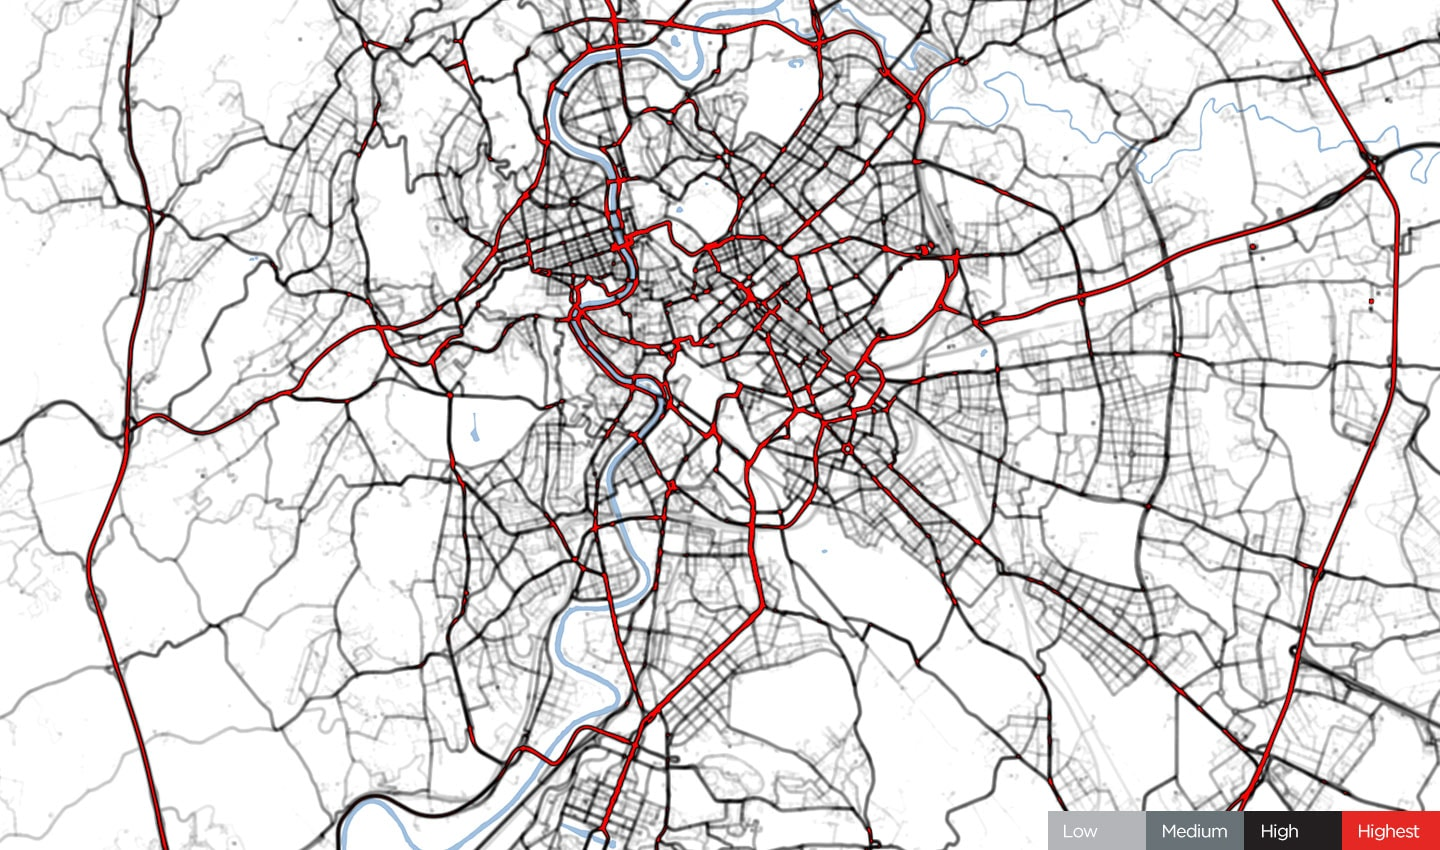 Traffic in Rome, January 24, 2020. Before COVID-19 restrictions.